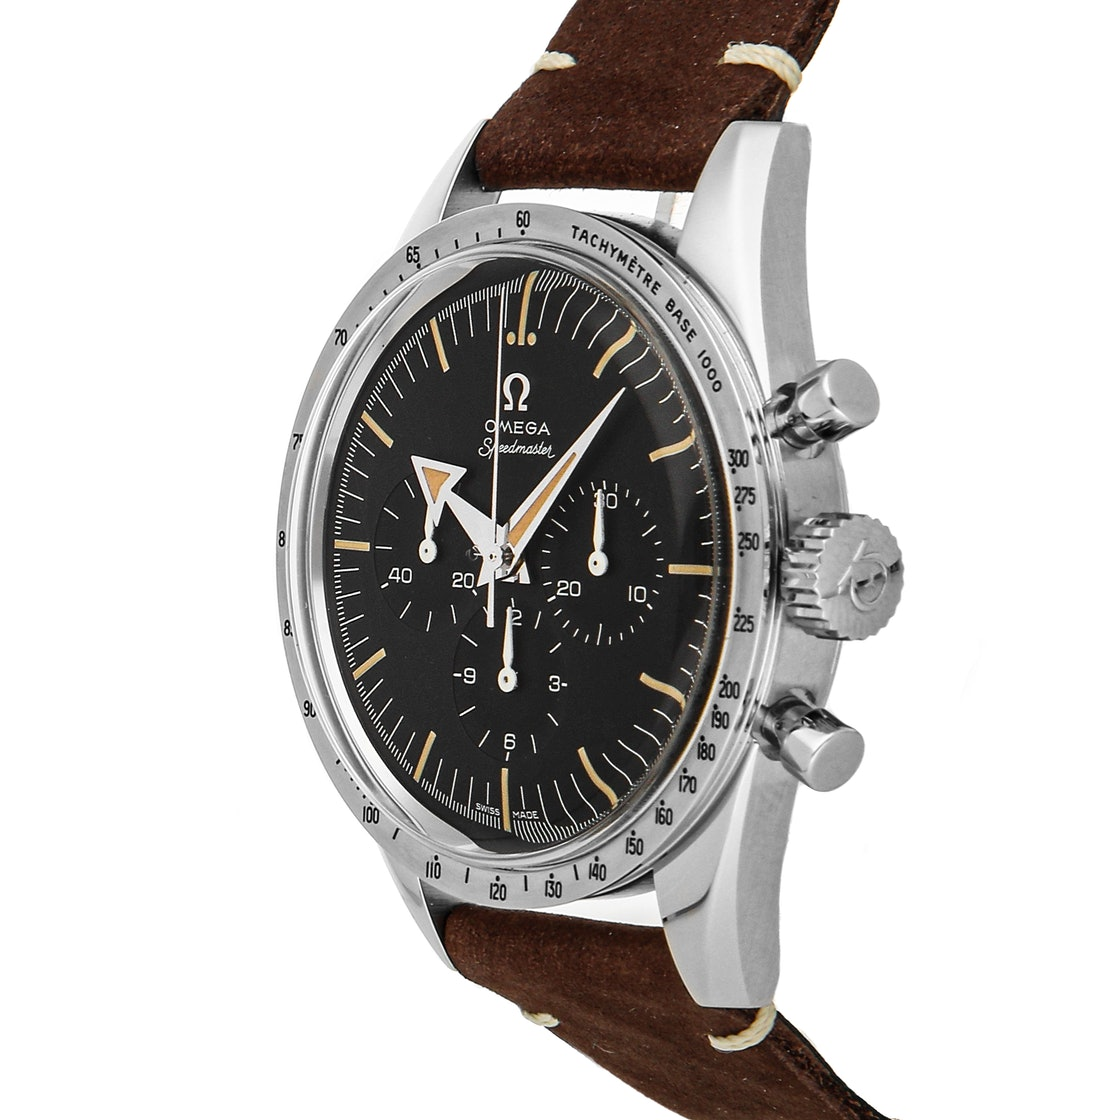 "Omega Speedmaster '57 Chrono ""The 1957 Trilogy"" Limited Edition 311.10.39.30.01.001"